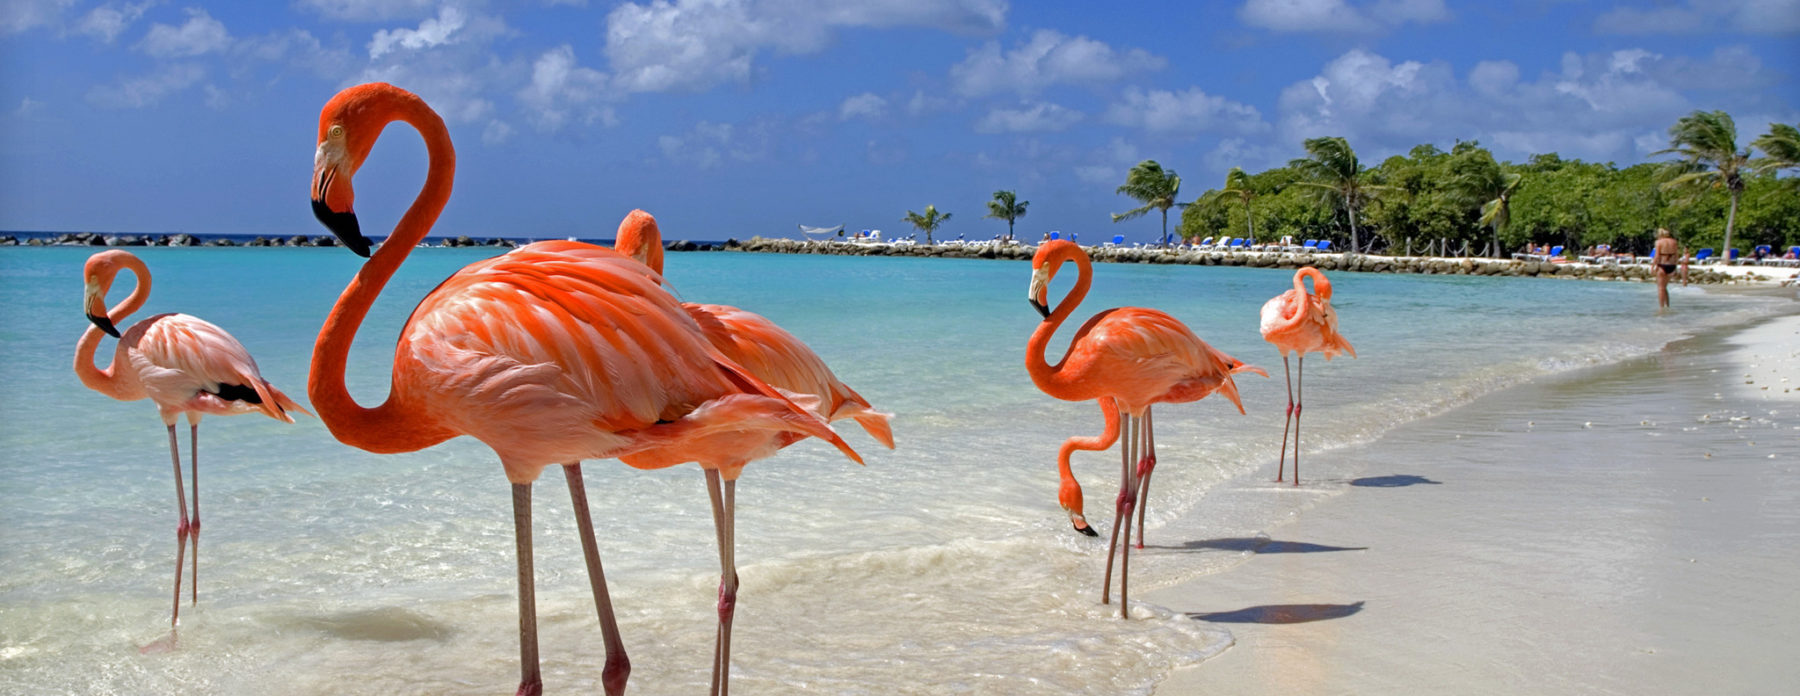 Fancy S First Cruise The Bahamas Now Sailing March 1 To 4th Come